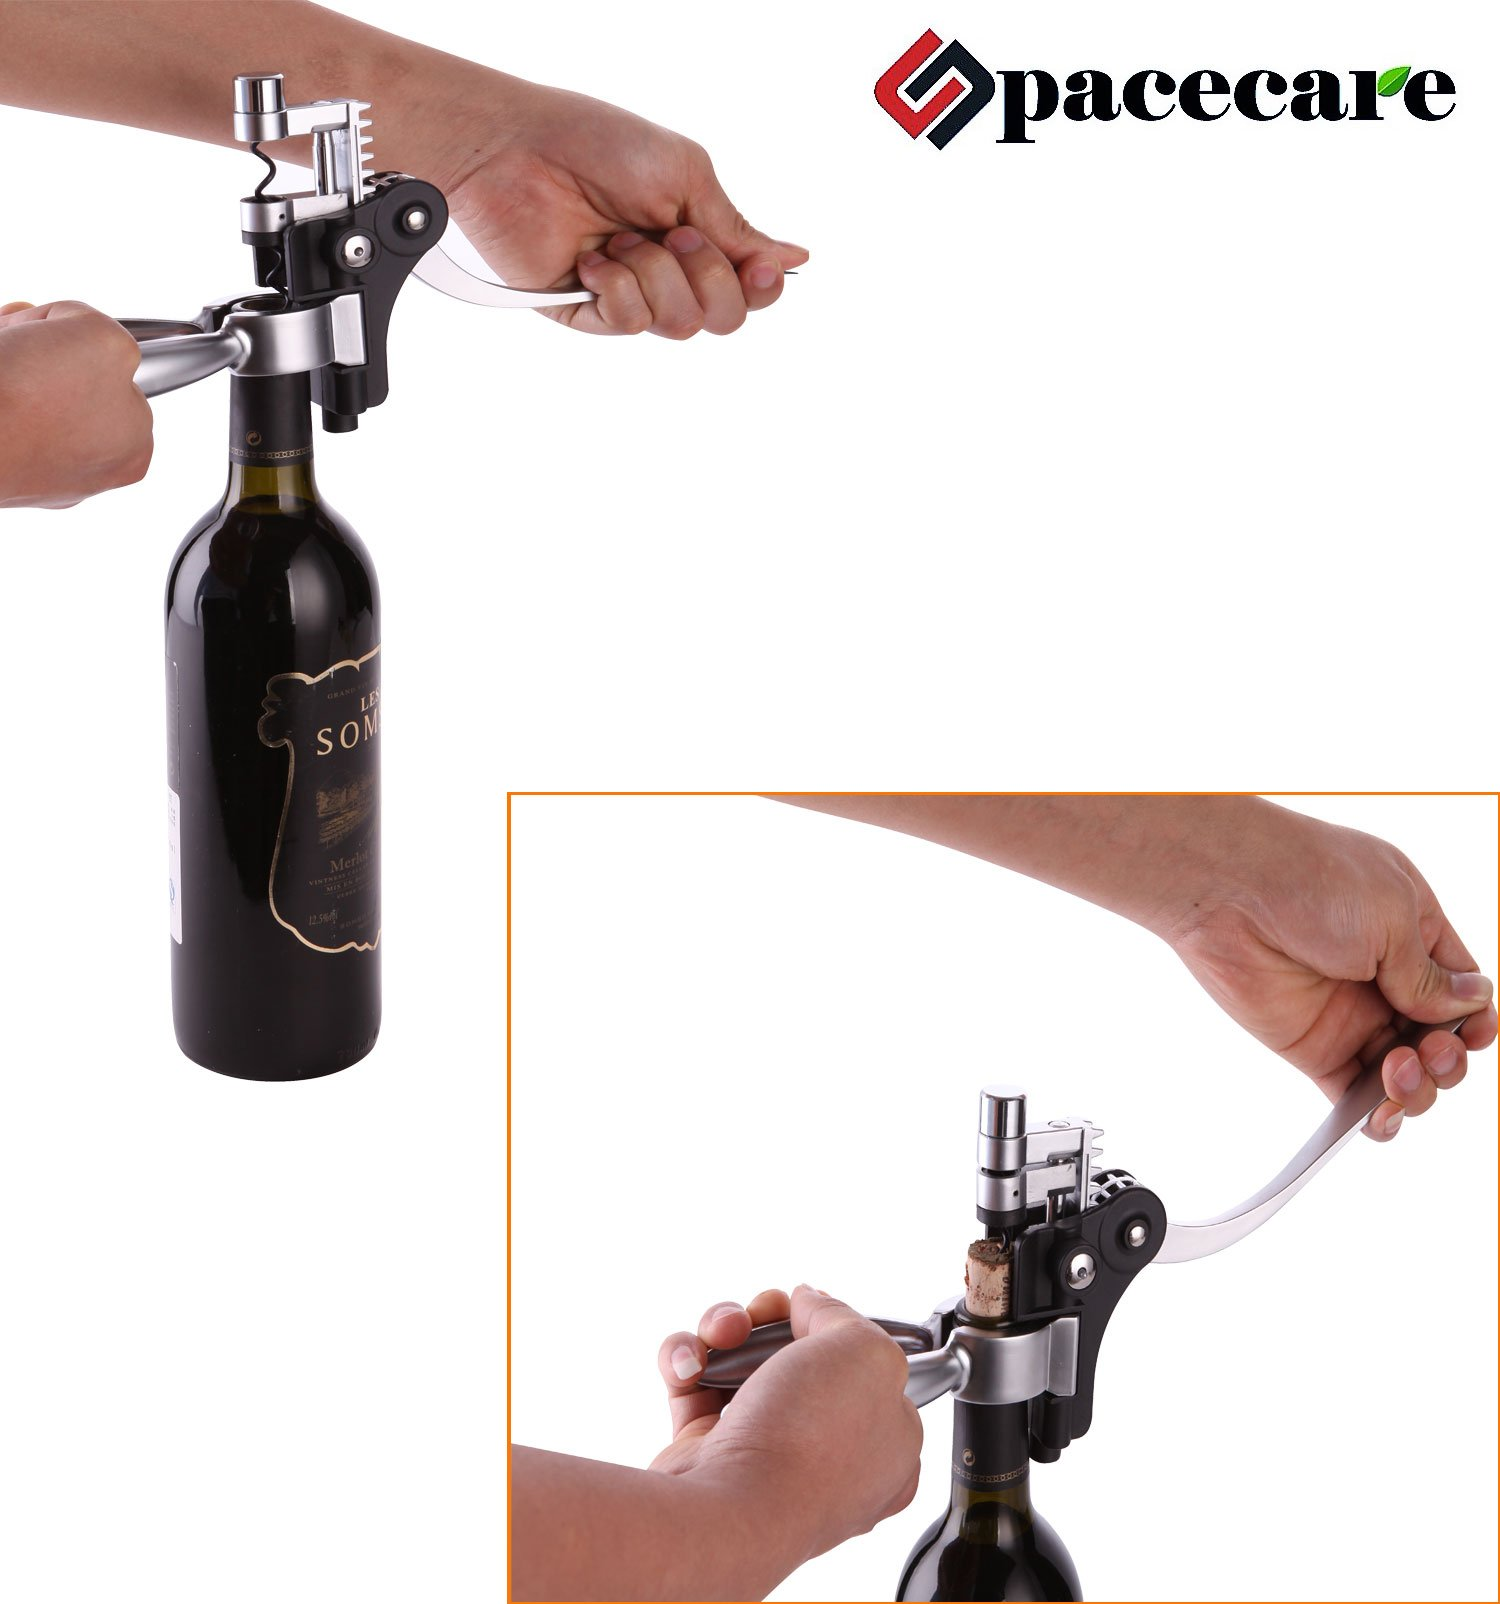 SPACECARE Wine Opener Kit with Chess,Red Wine Beer Bottle Opener Wing Corkscrew,Aerator, Thermometer, Stopper, and Accessories Set with Dark Cherry Wood Case - 10 Piece by SPACECARE (Image #4)